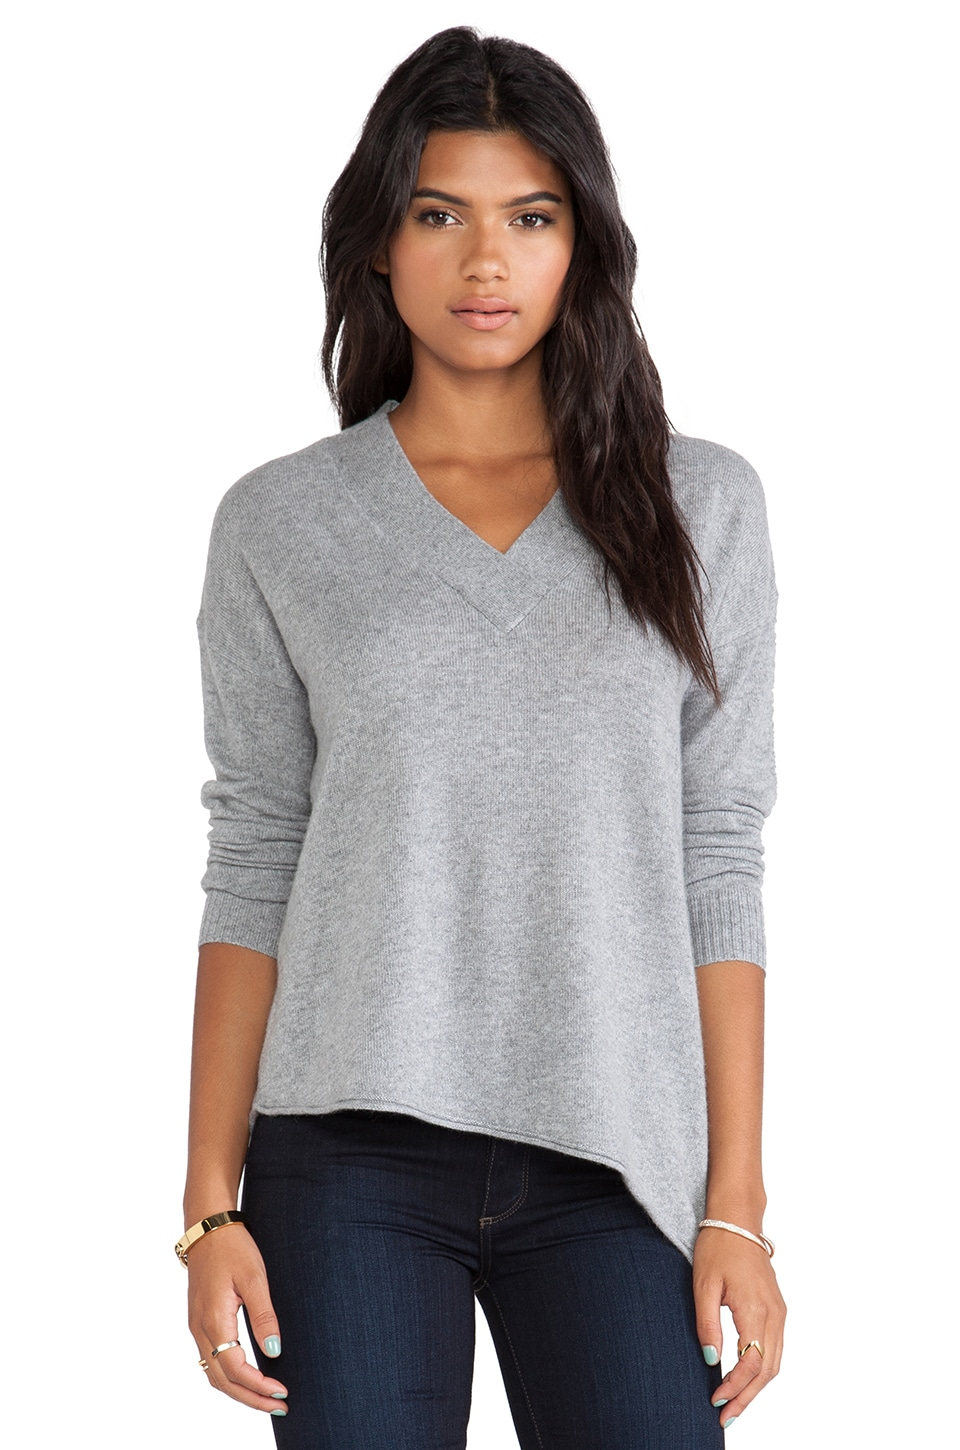 White + Warren Wide Trim V Neck Sweater in Nickel Heather